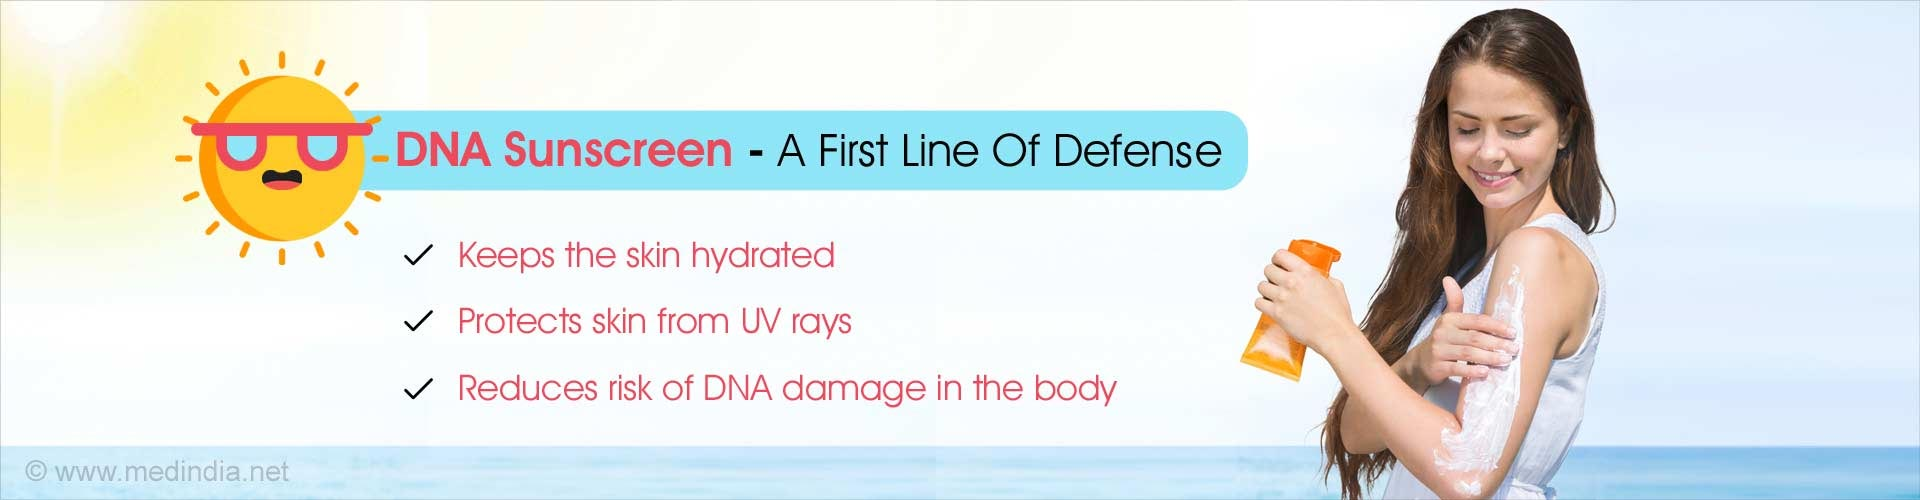 DNA Sunscreen - A first line of defense